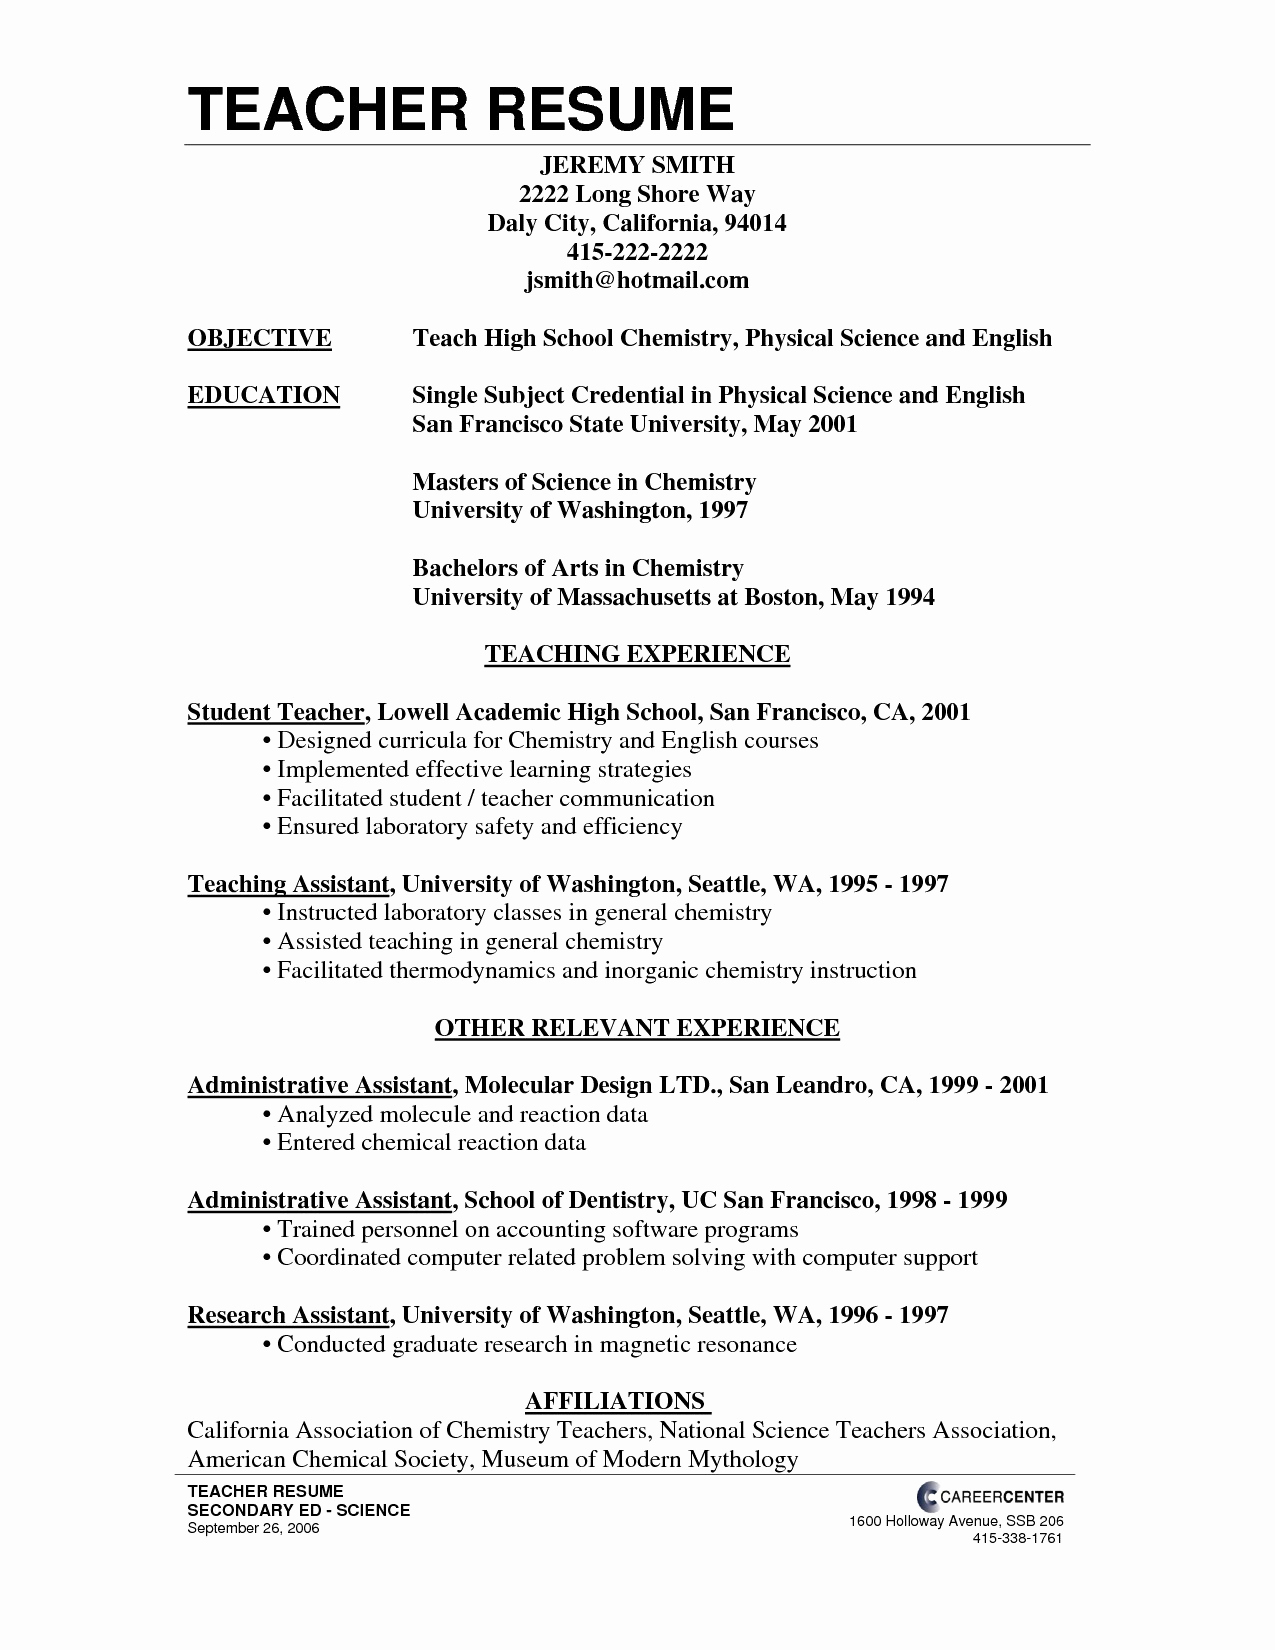 Cover Letter Word Template Free - Resume Templates Word Free New Free Cover Letter Templates Examples